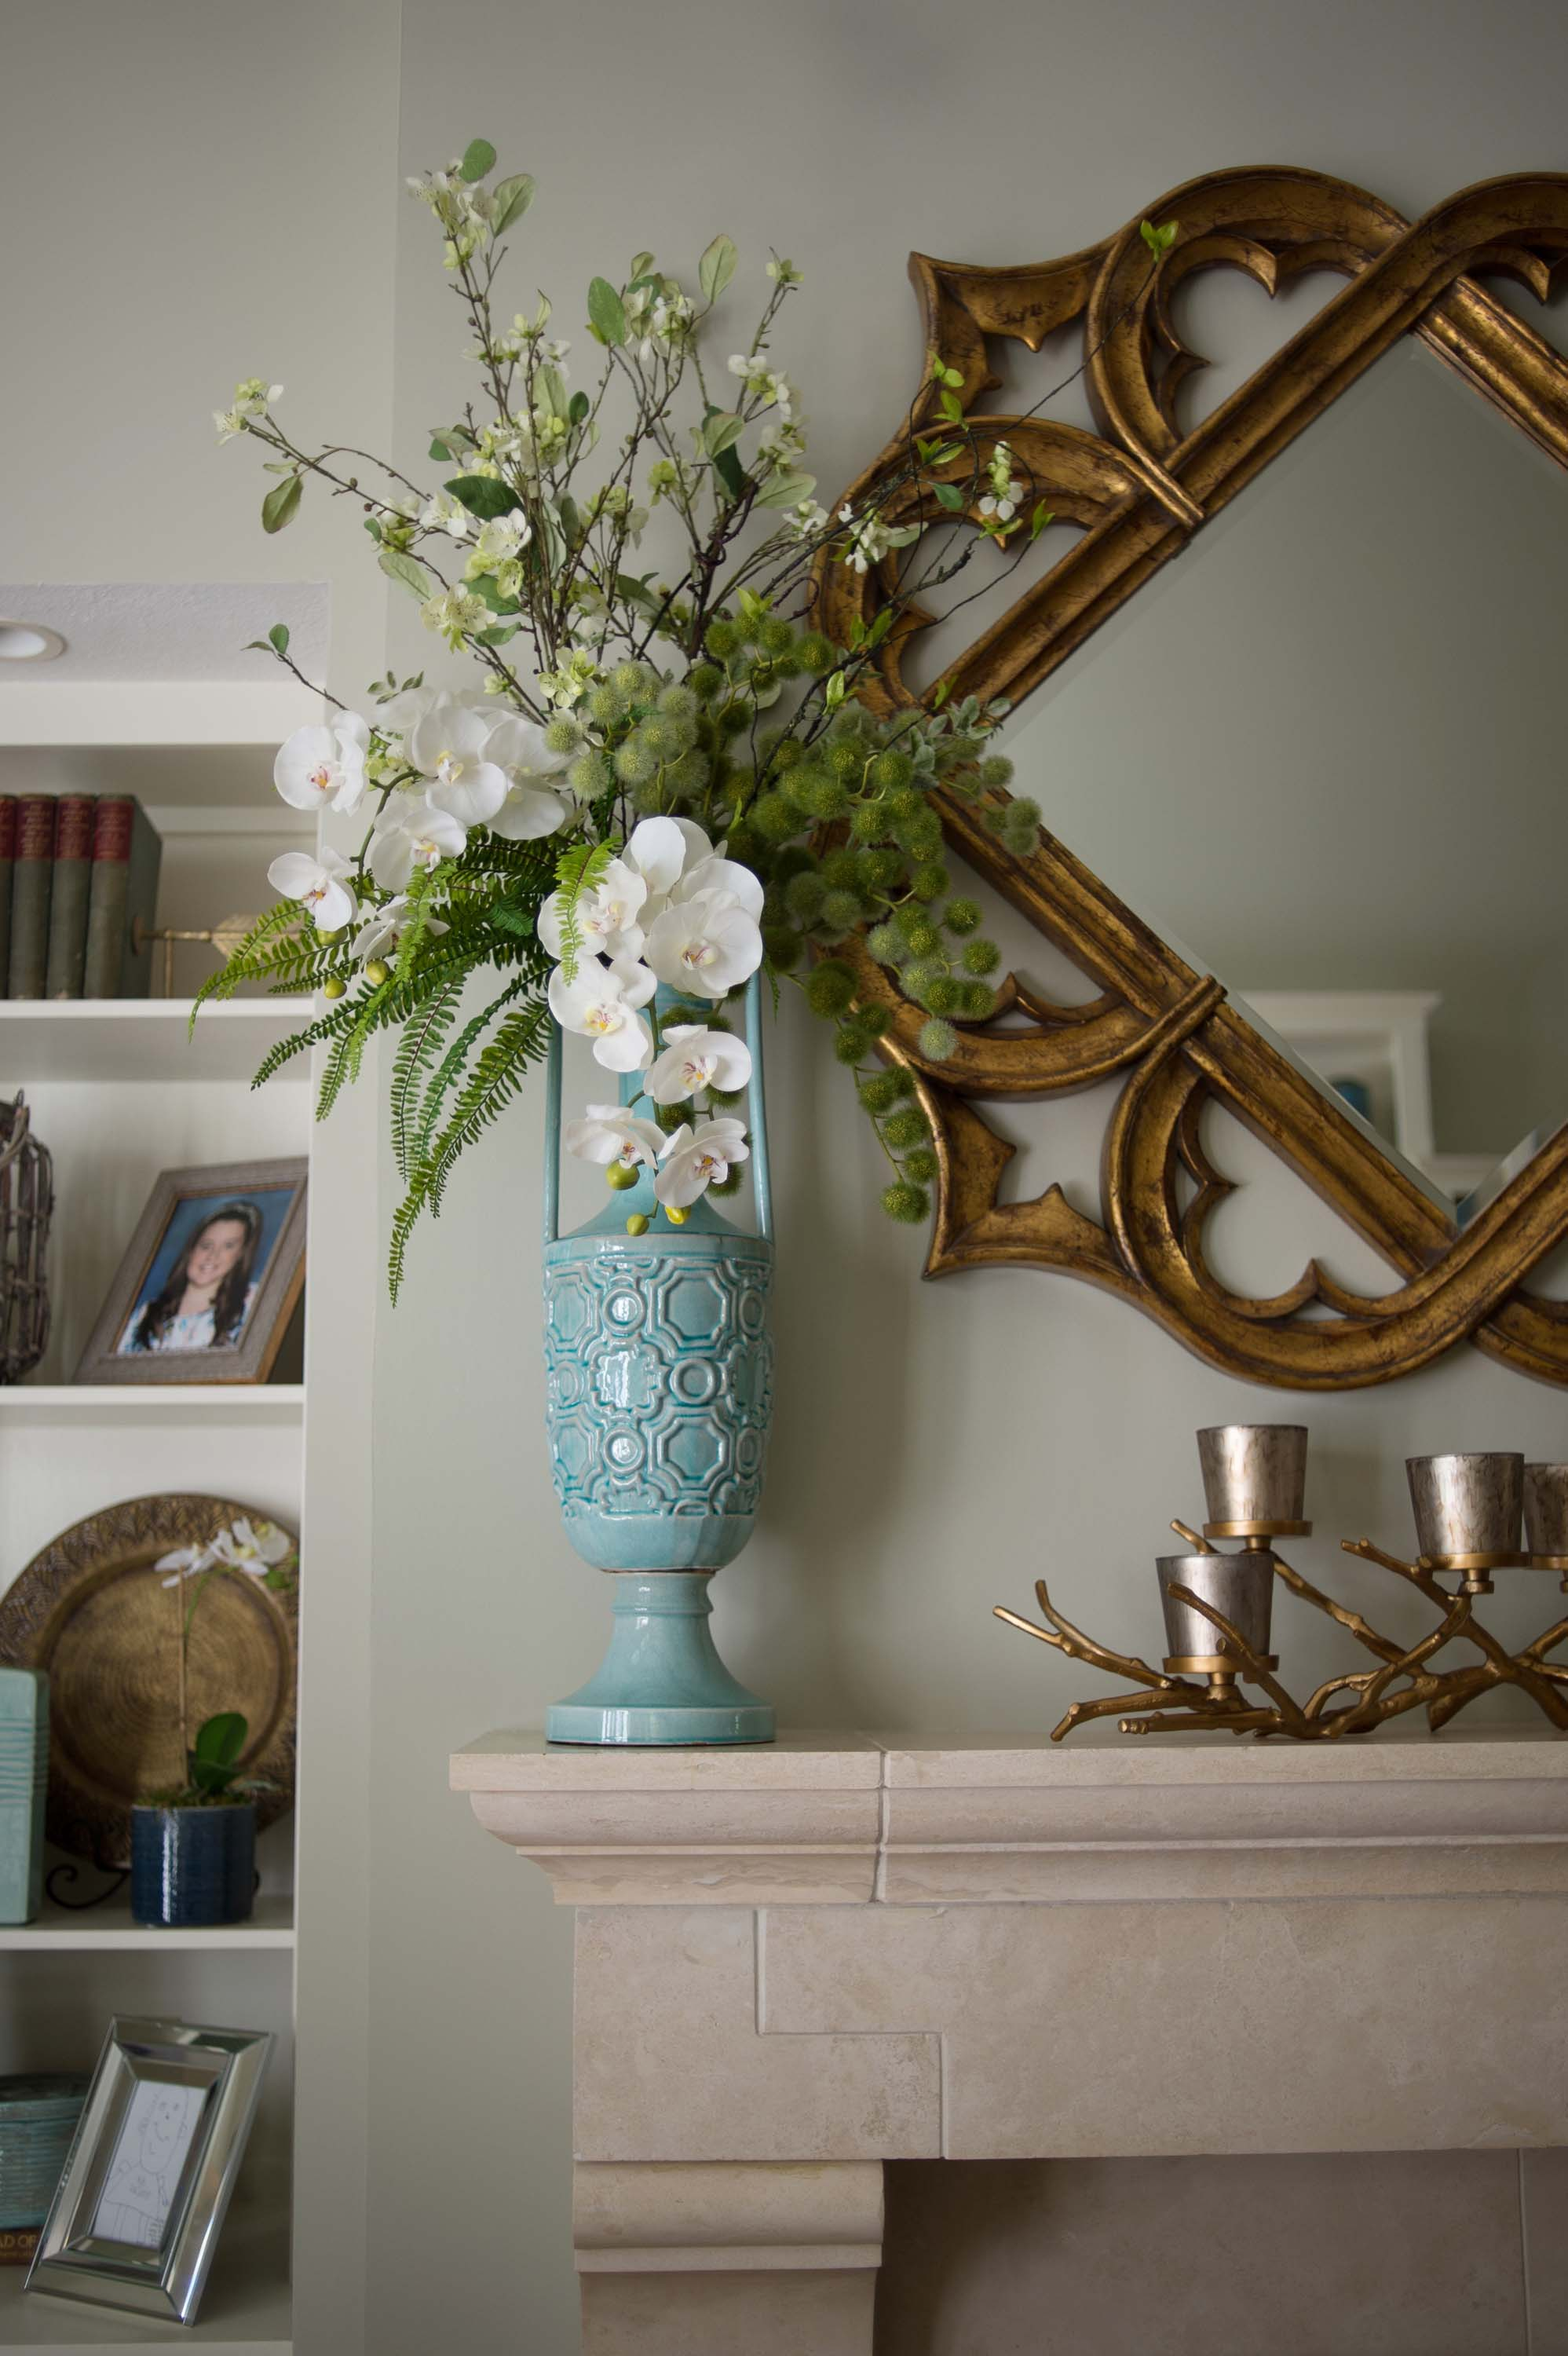 House interior with modern style mirror, and flowers